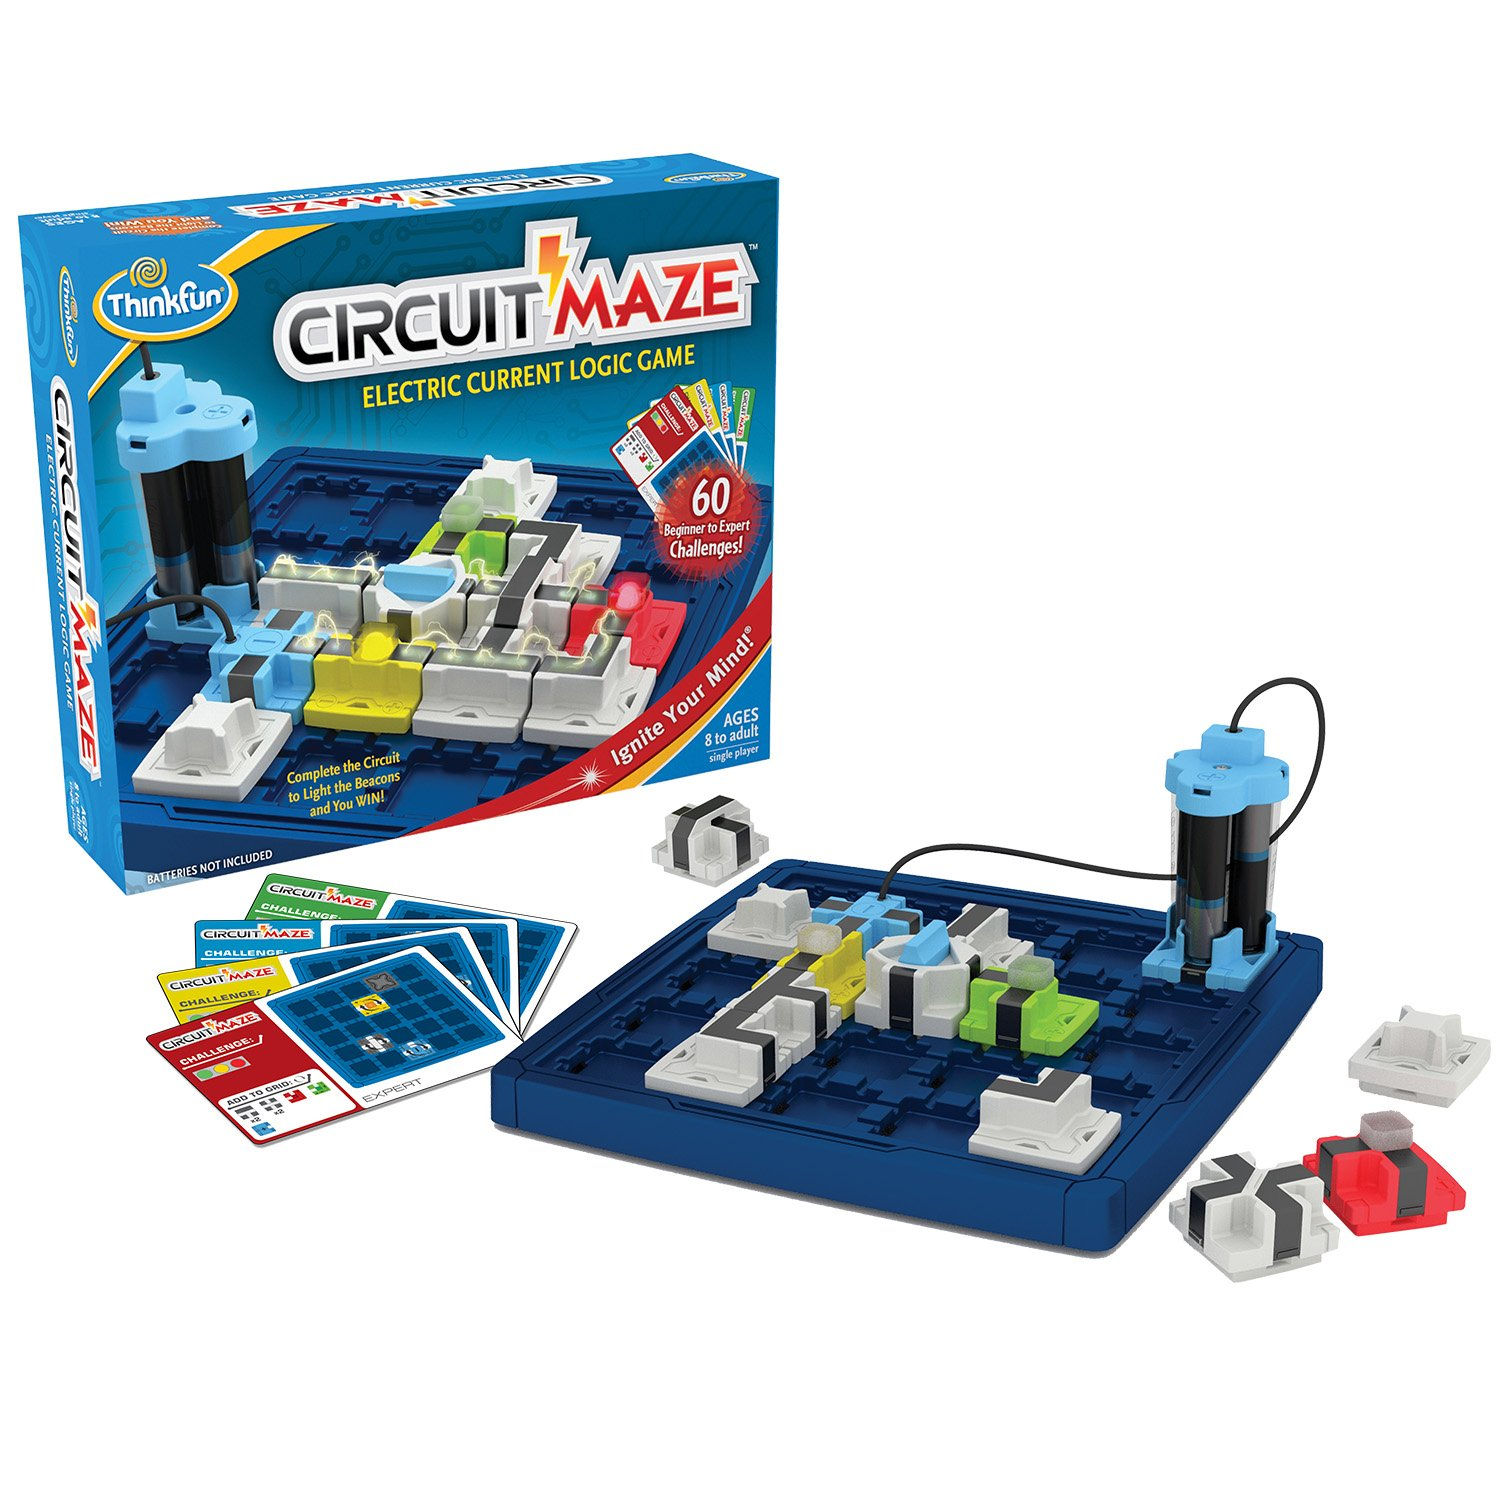 Thinkfun Circuit Maze Electric Current Logic Game And Stem Toy For More Led Circuits Driver Hobby Category List Email Boys Girls Age 8 Up Teaches Players About Circuitry Through Fun Gameplay